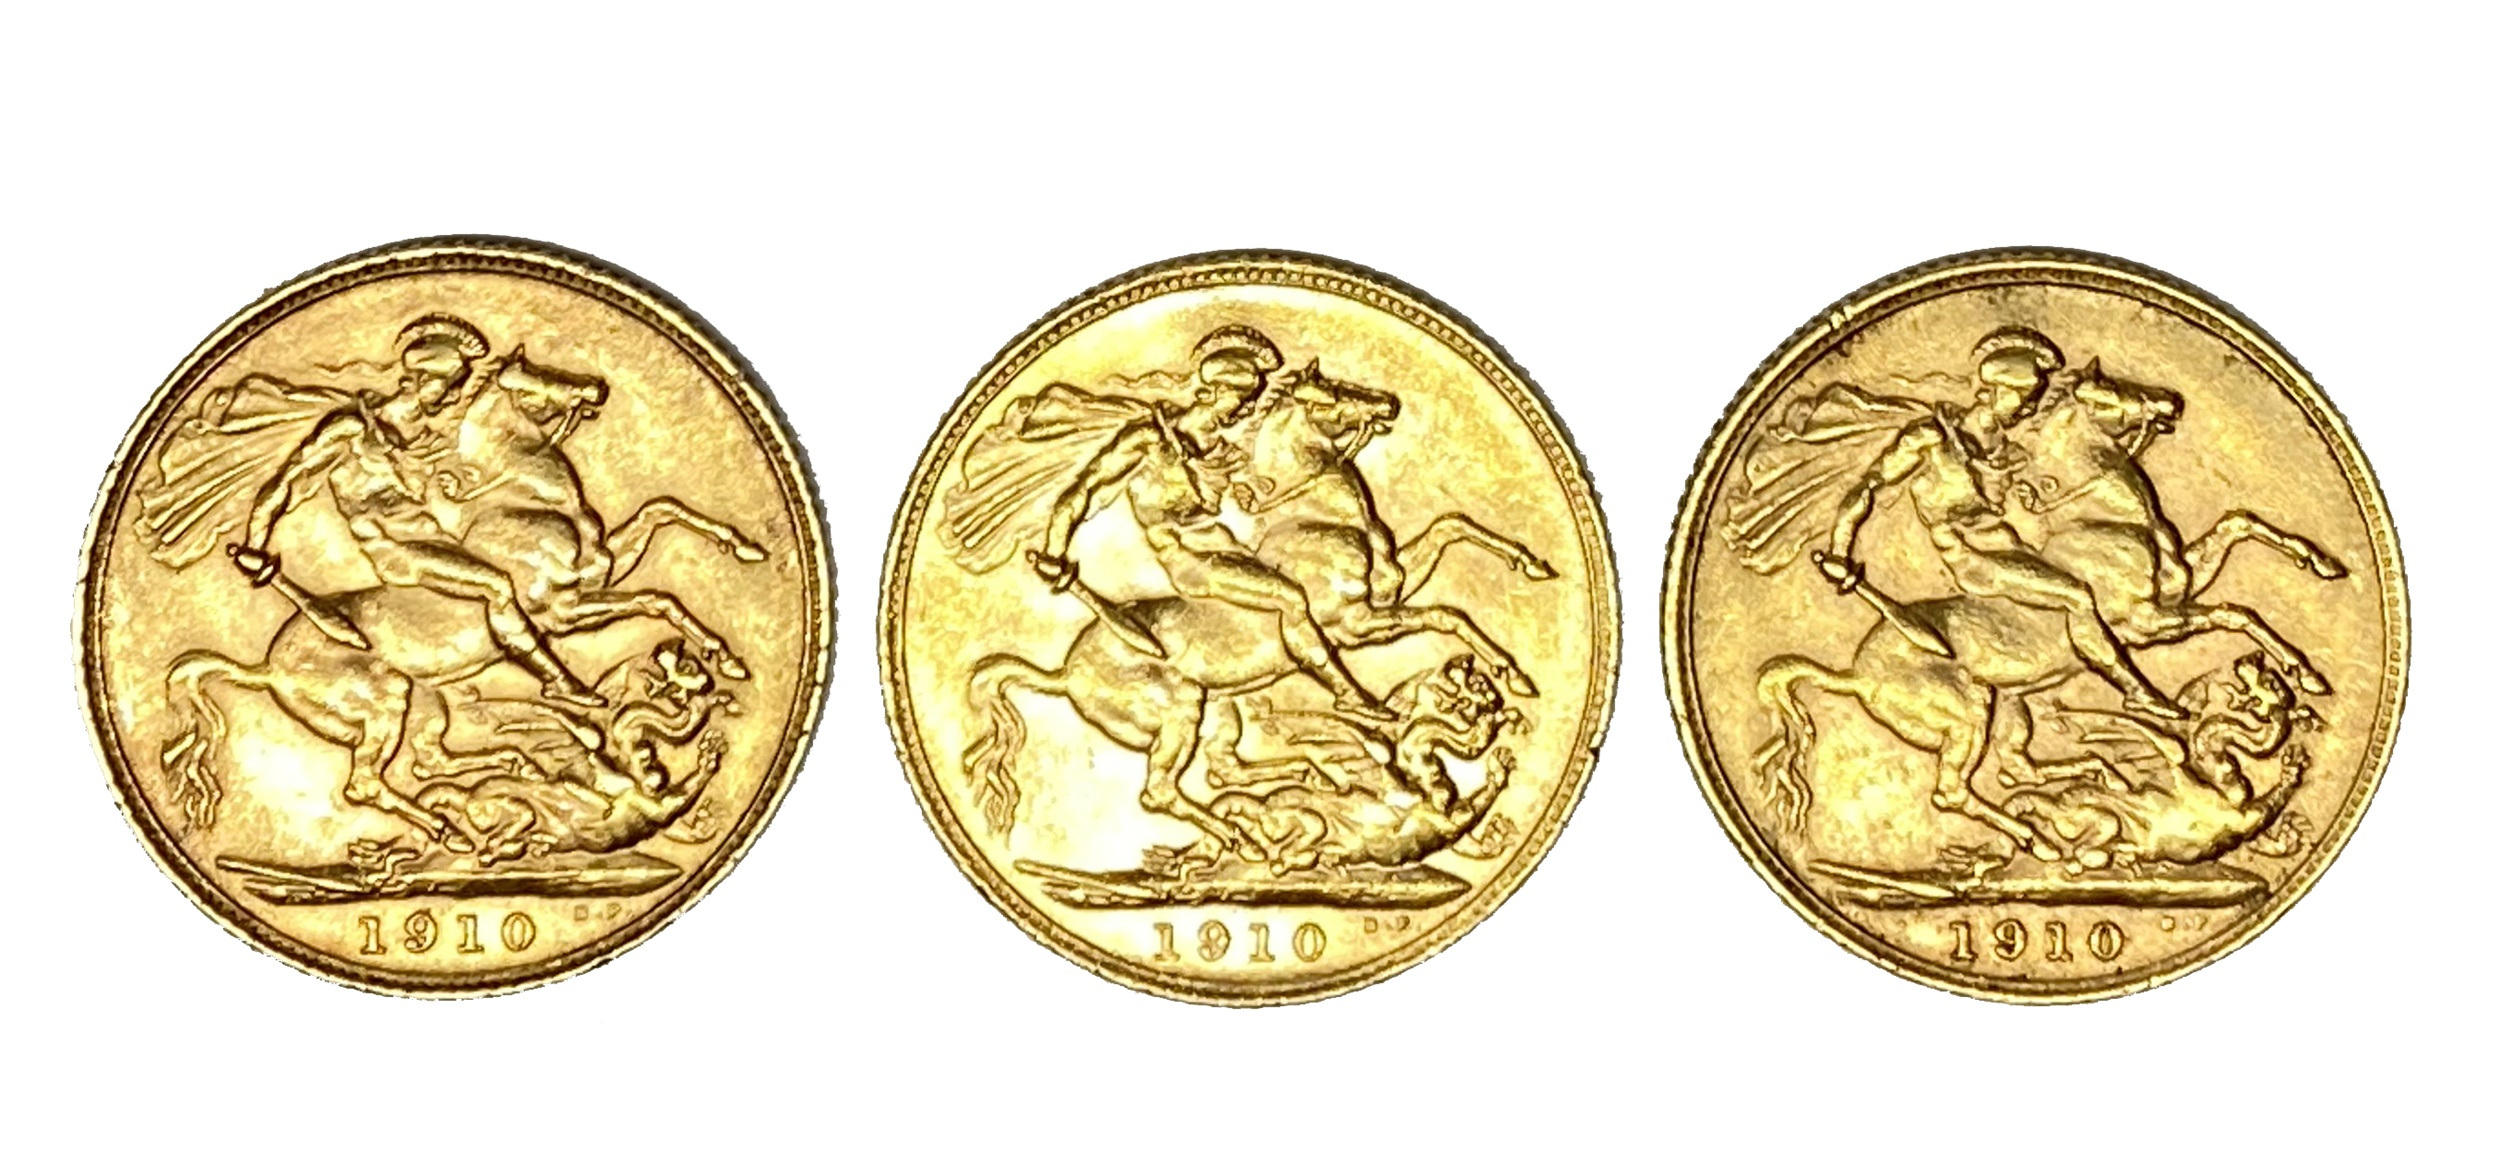 Edward VII three gold Sovereign coins, 1910 - Image 2 of 2